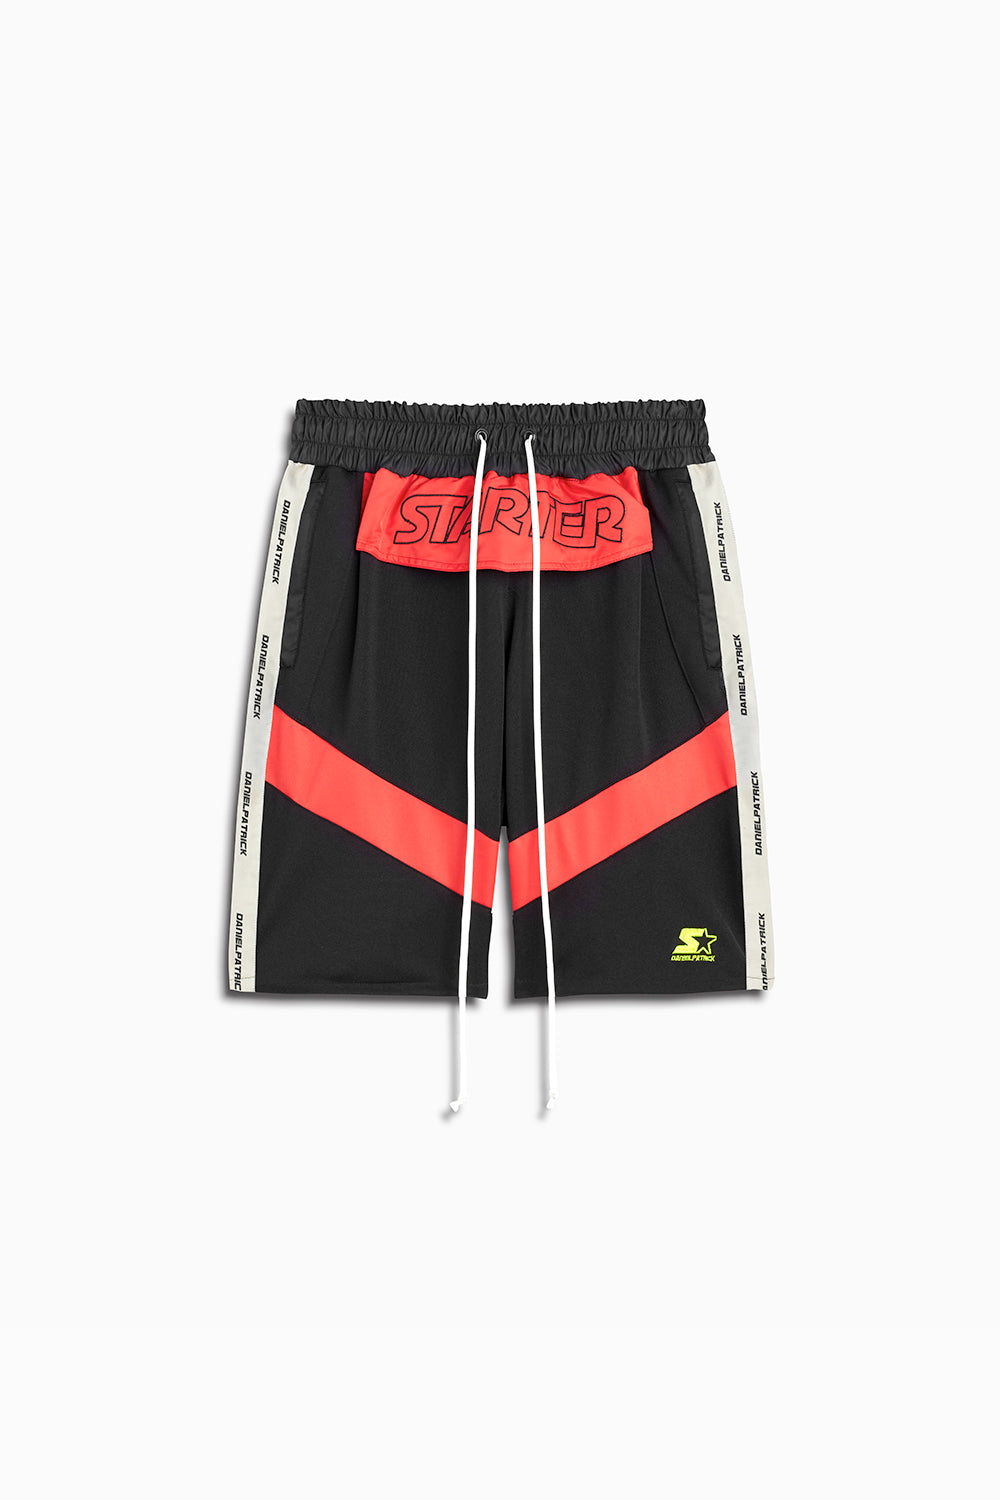 dp starter breakaway shorts in black/red/ivory by daniel patrick x starter